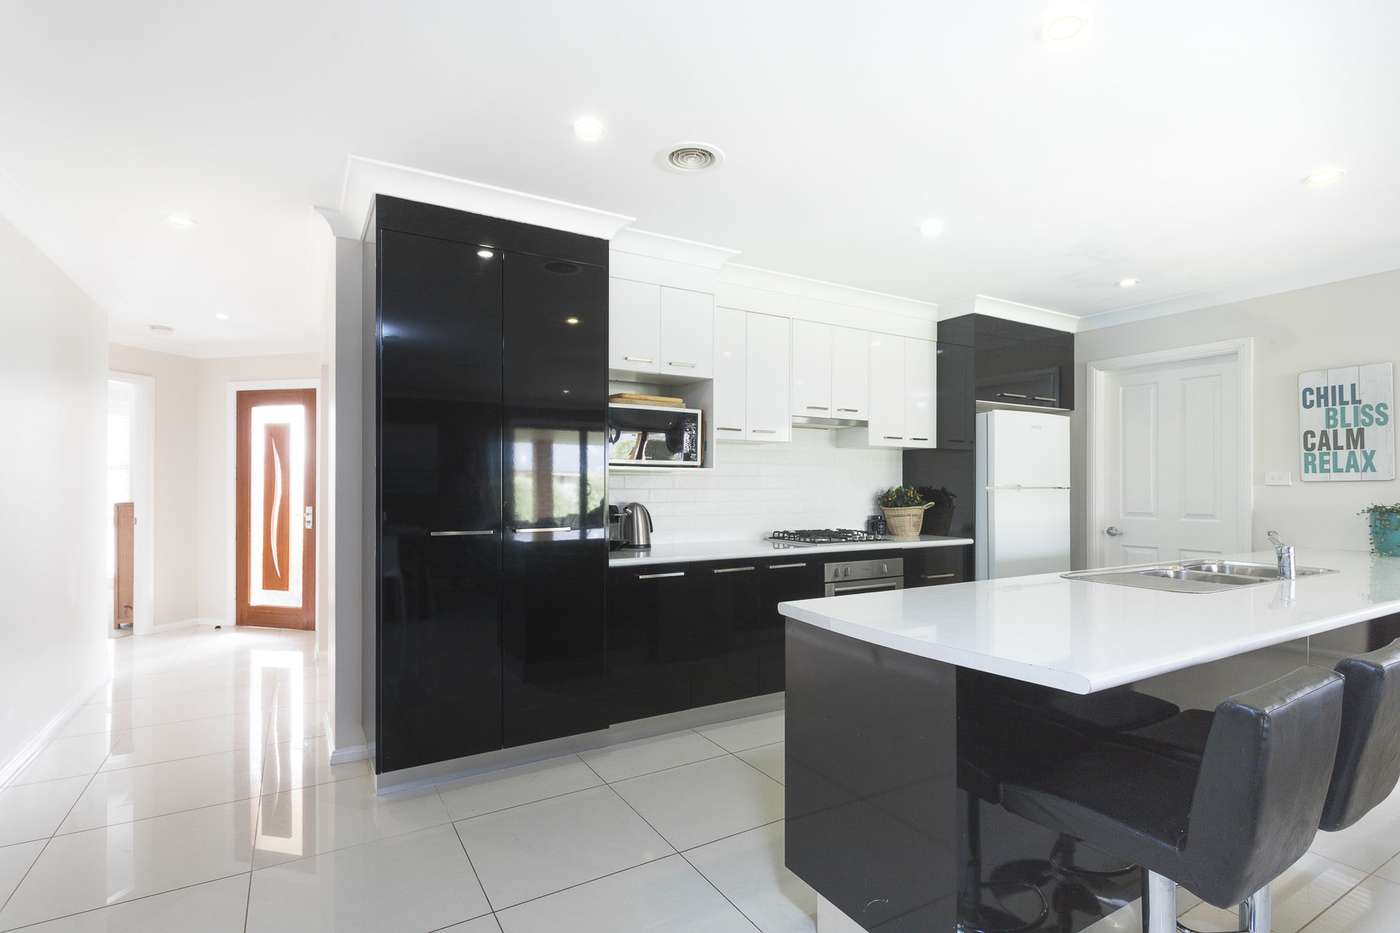 Main view of Homely house listing, 30 Botanic Way, Orange, NSW 2800